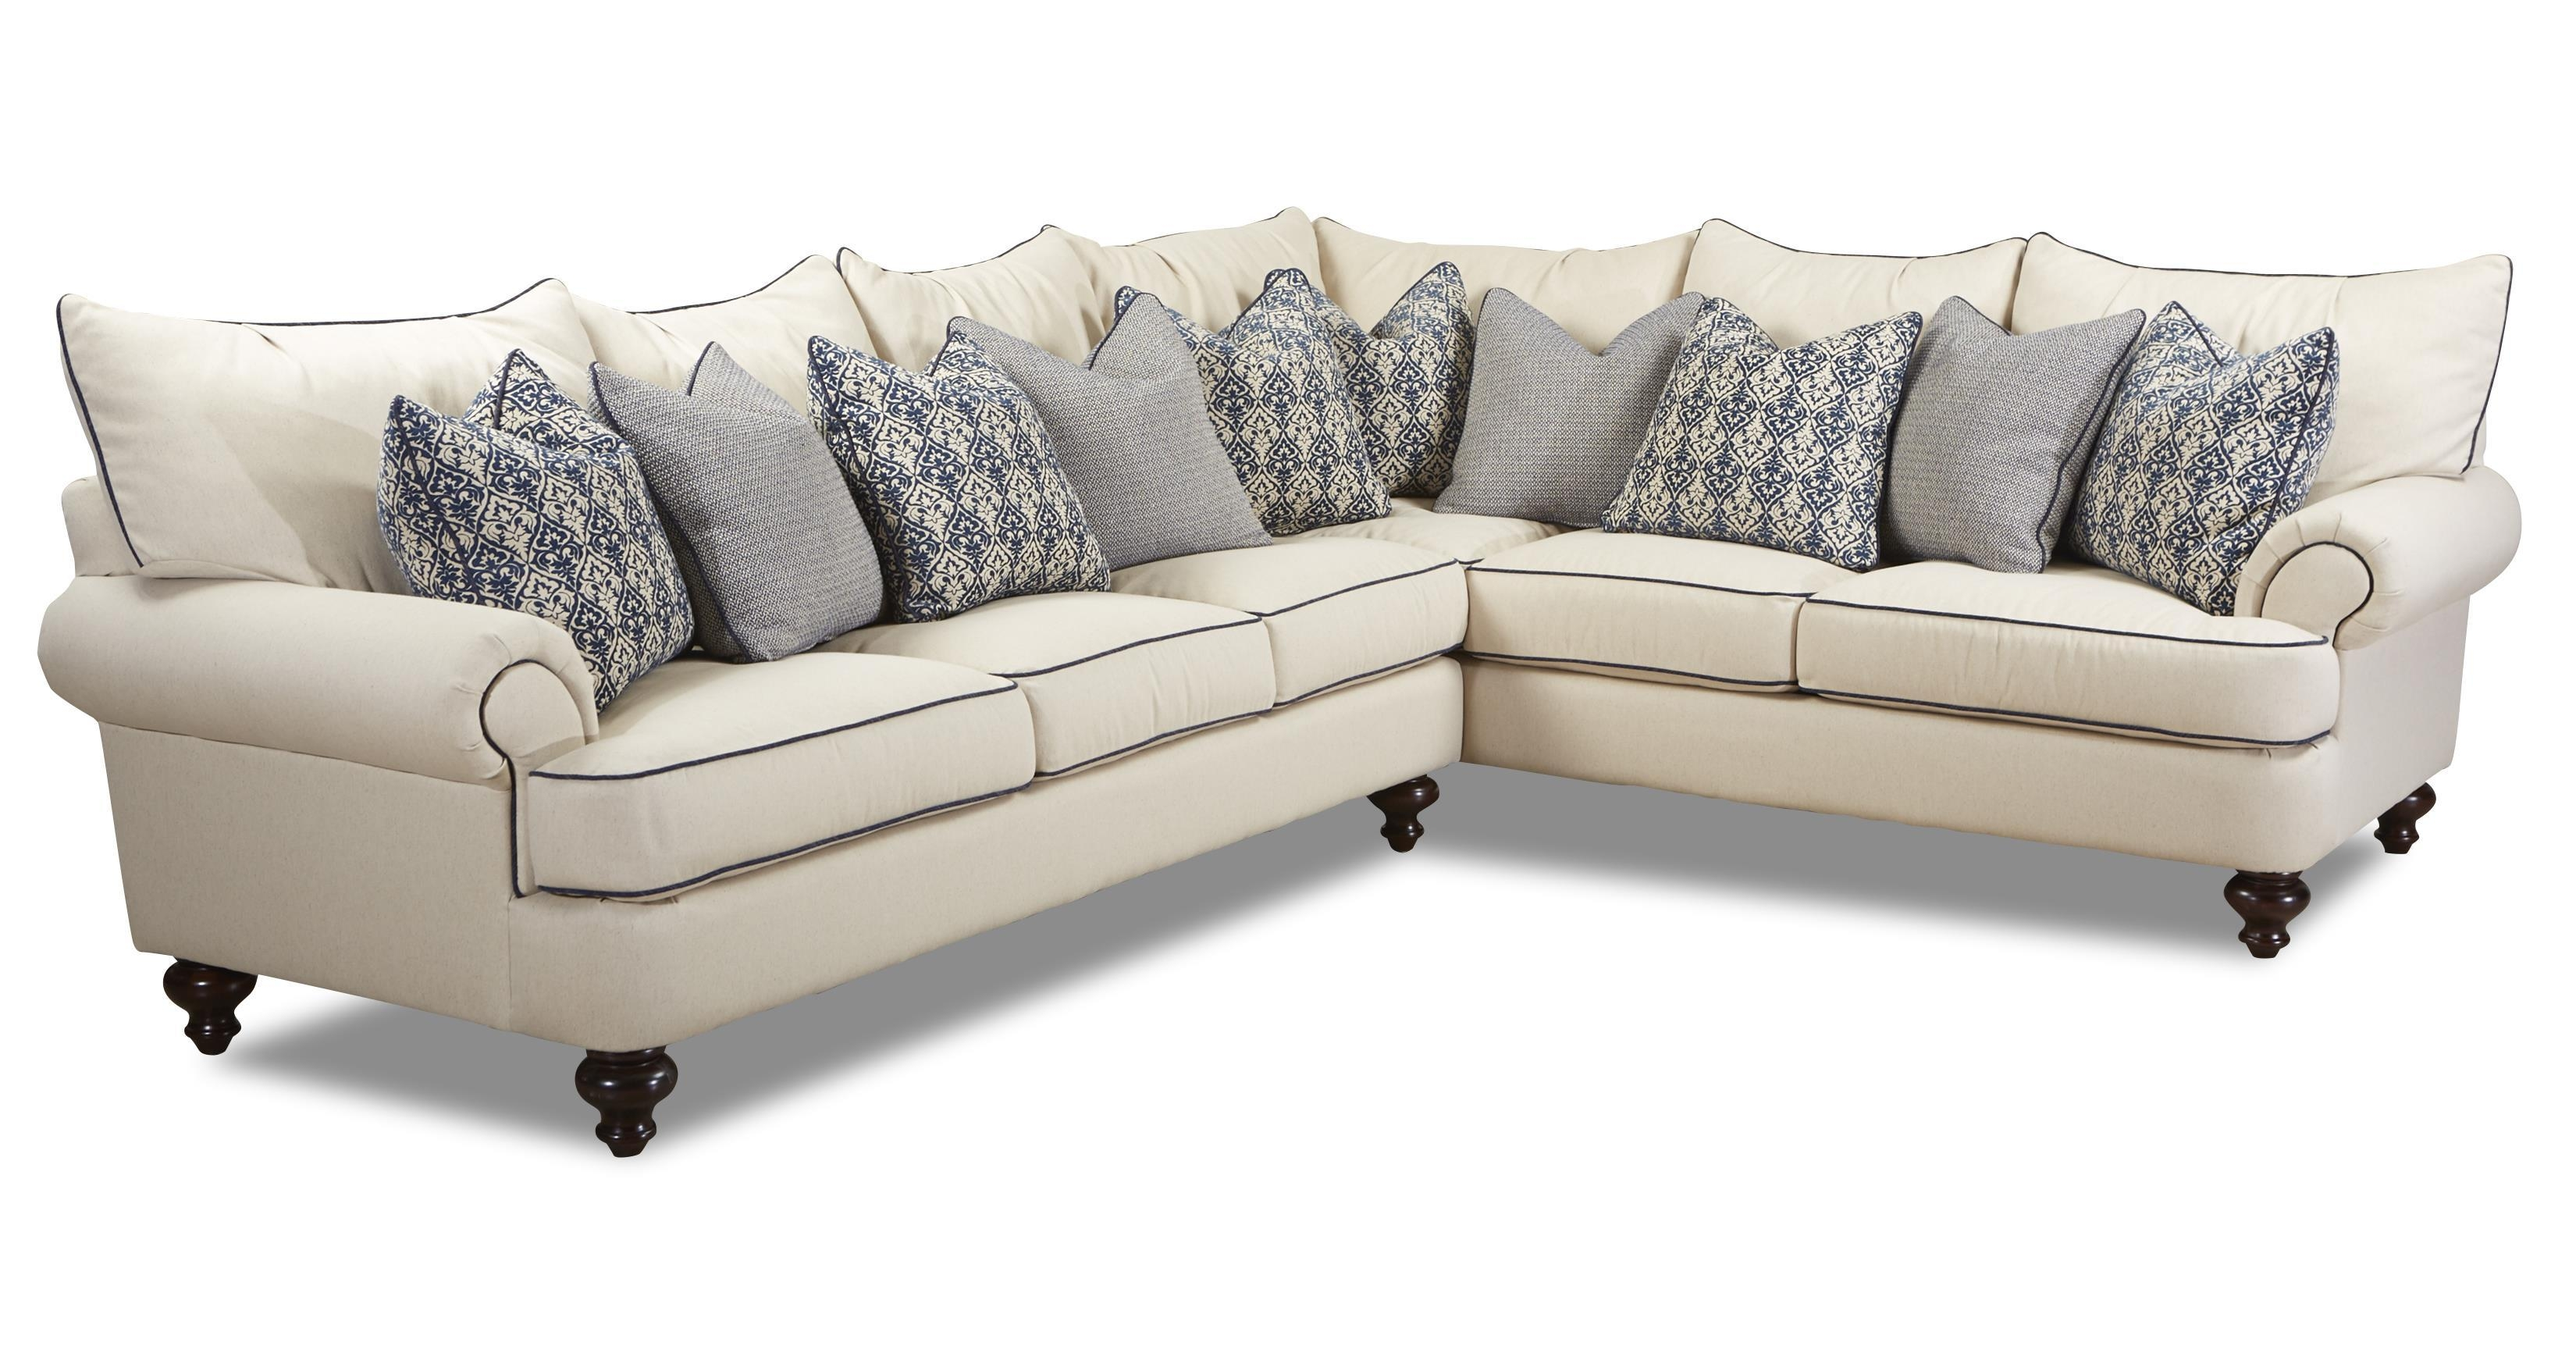 Shabby Chic Sectional Sofaklaussner | Wolf And Gardiner Wolf Within Shabby Chic Sectional Sofas (Image 14 of 20)